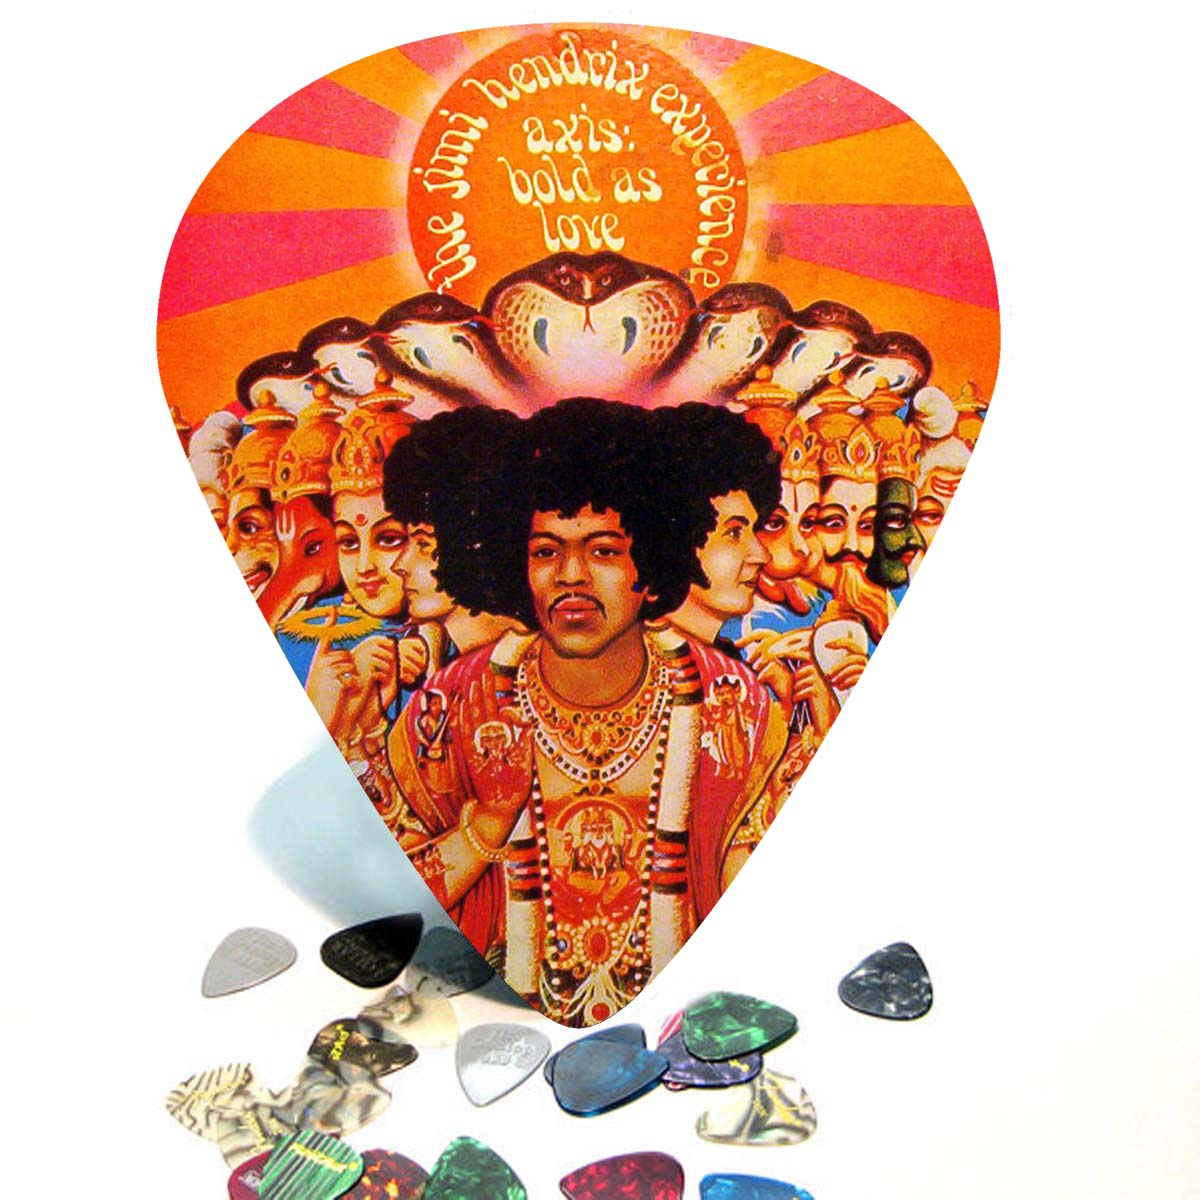 Hendrix Album Cover Giant Guitar Pick Wall Art - 1071